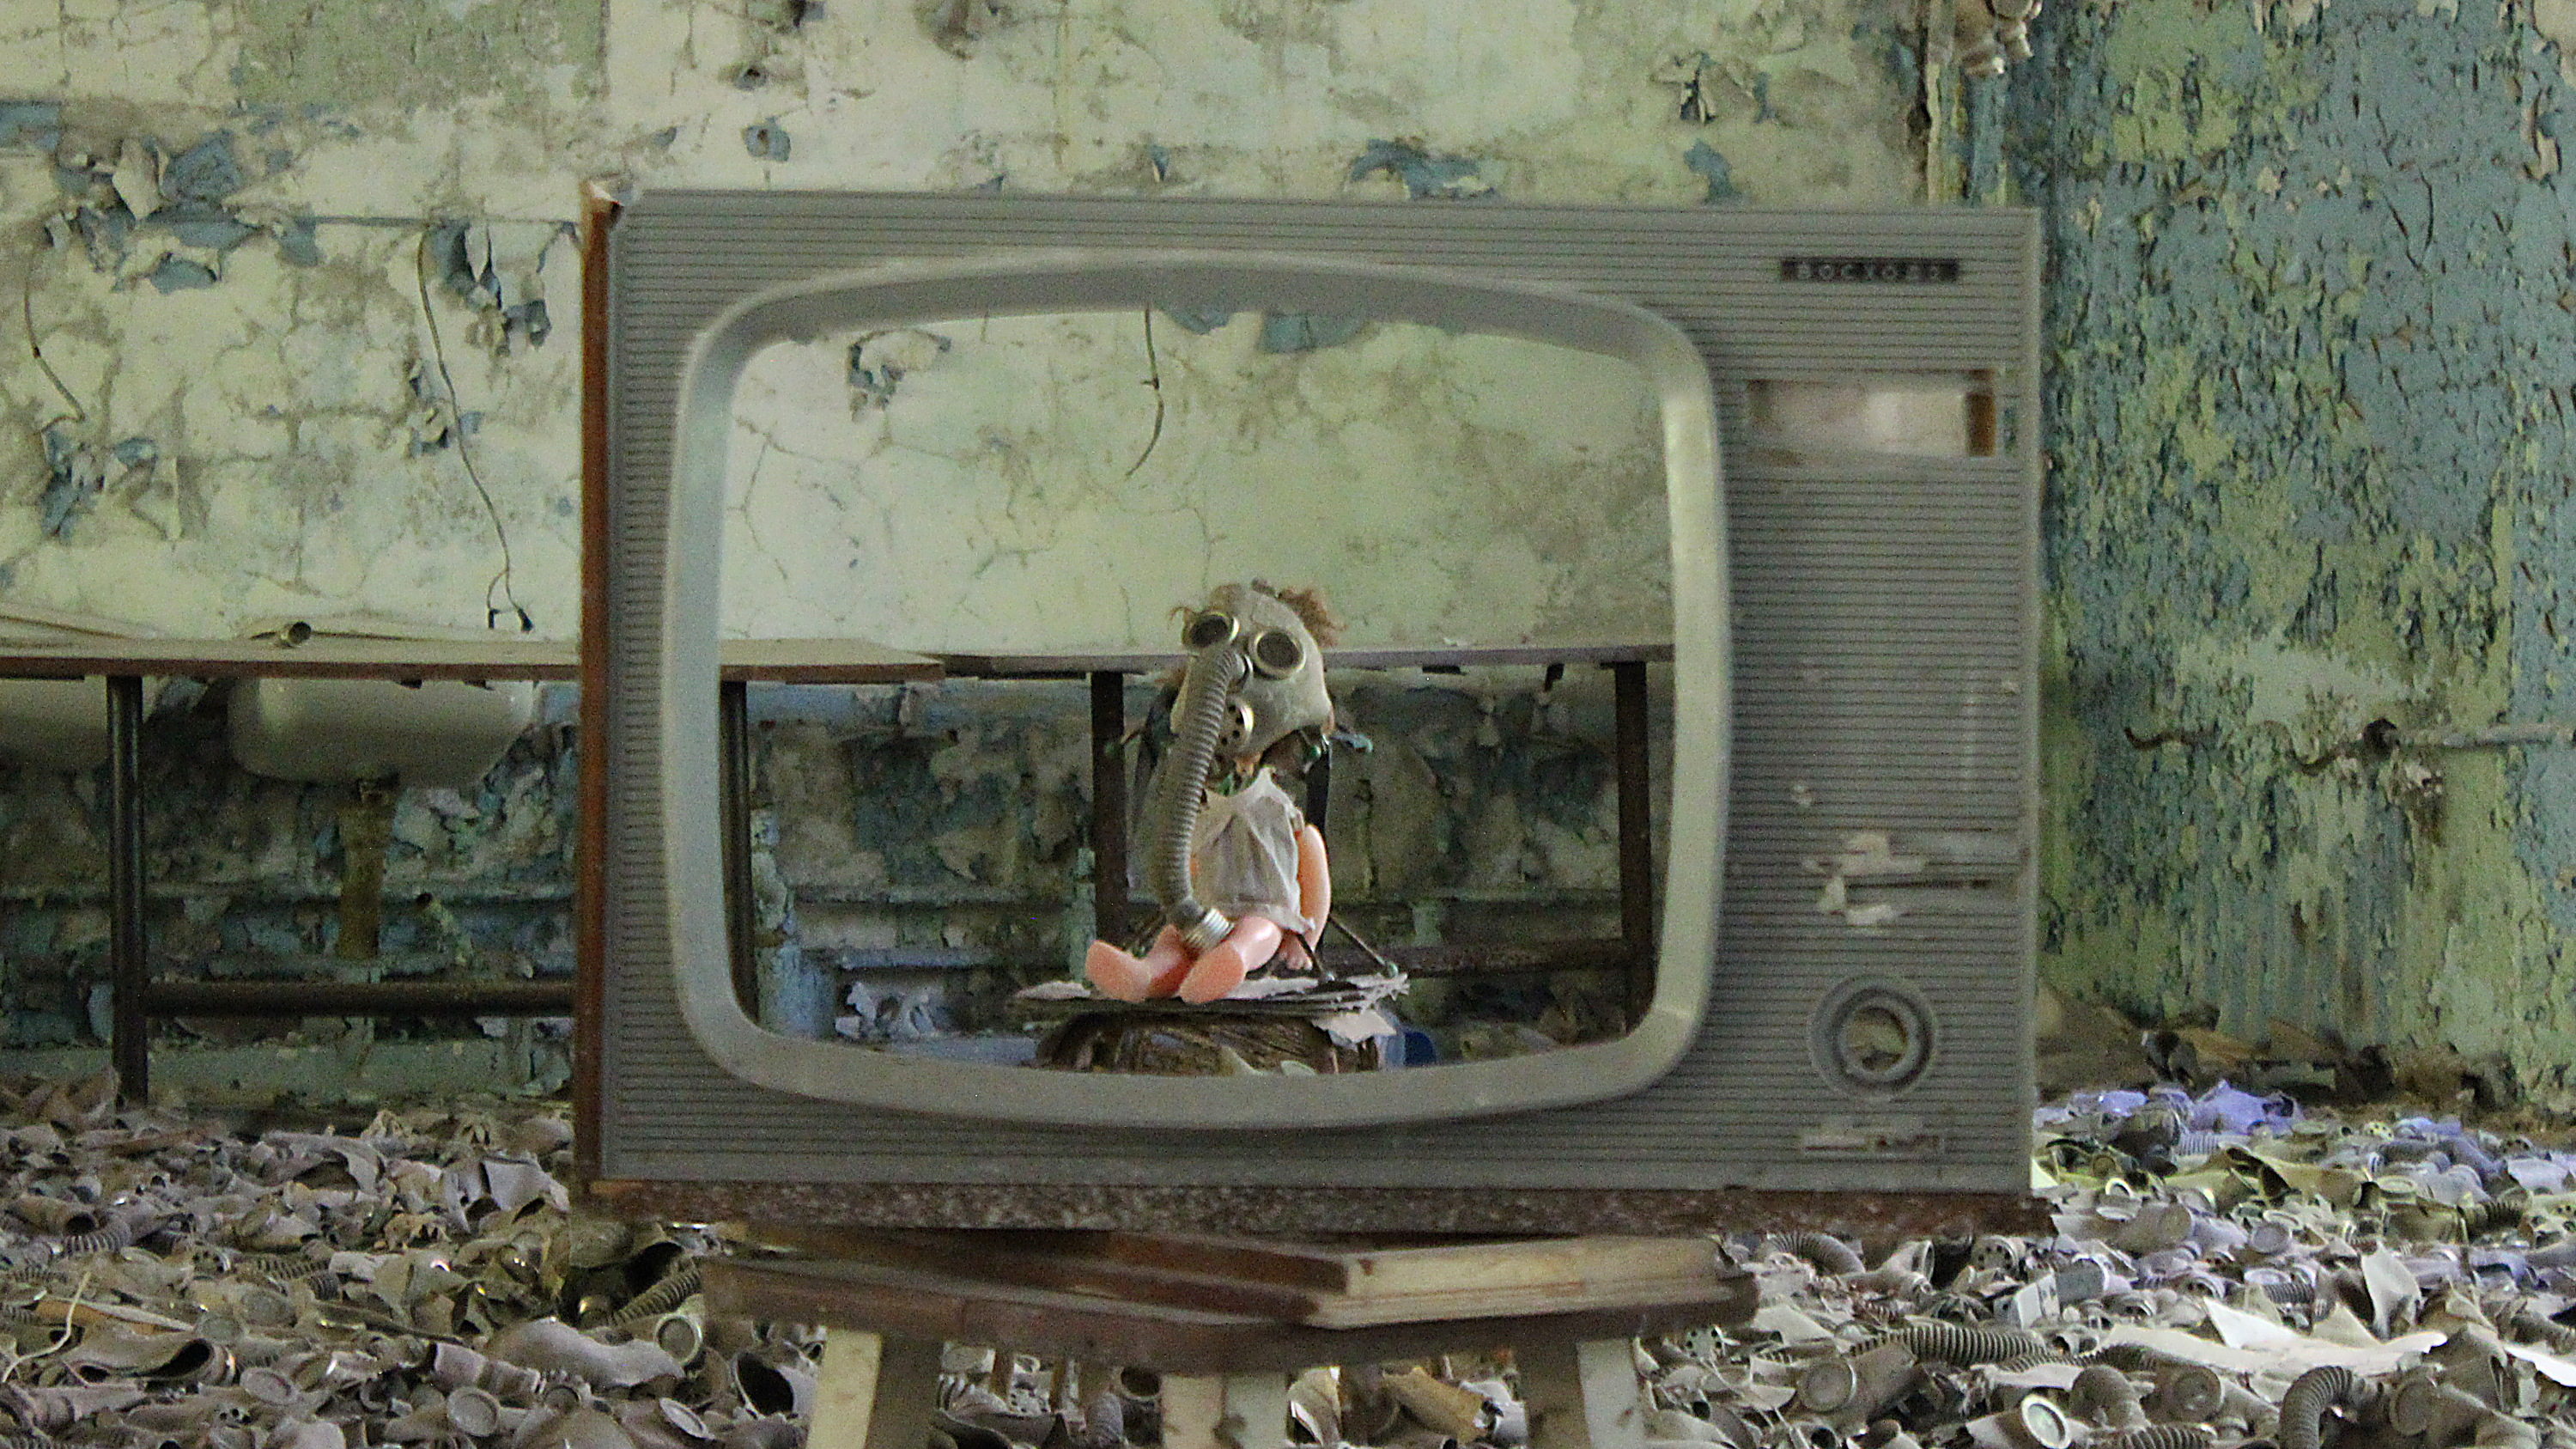 A creepy baby doll with a gas mask inside a television in Pripyat near Chernobyl.